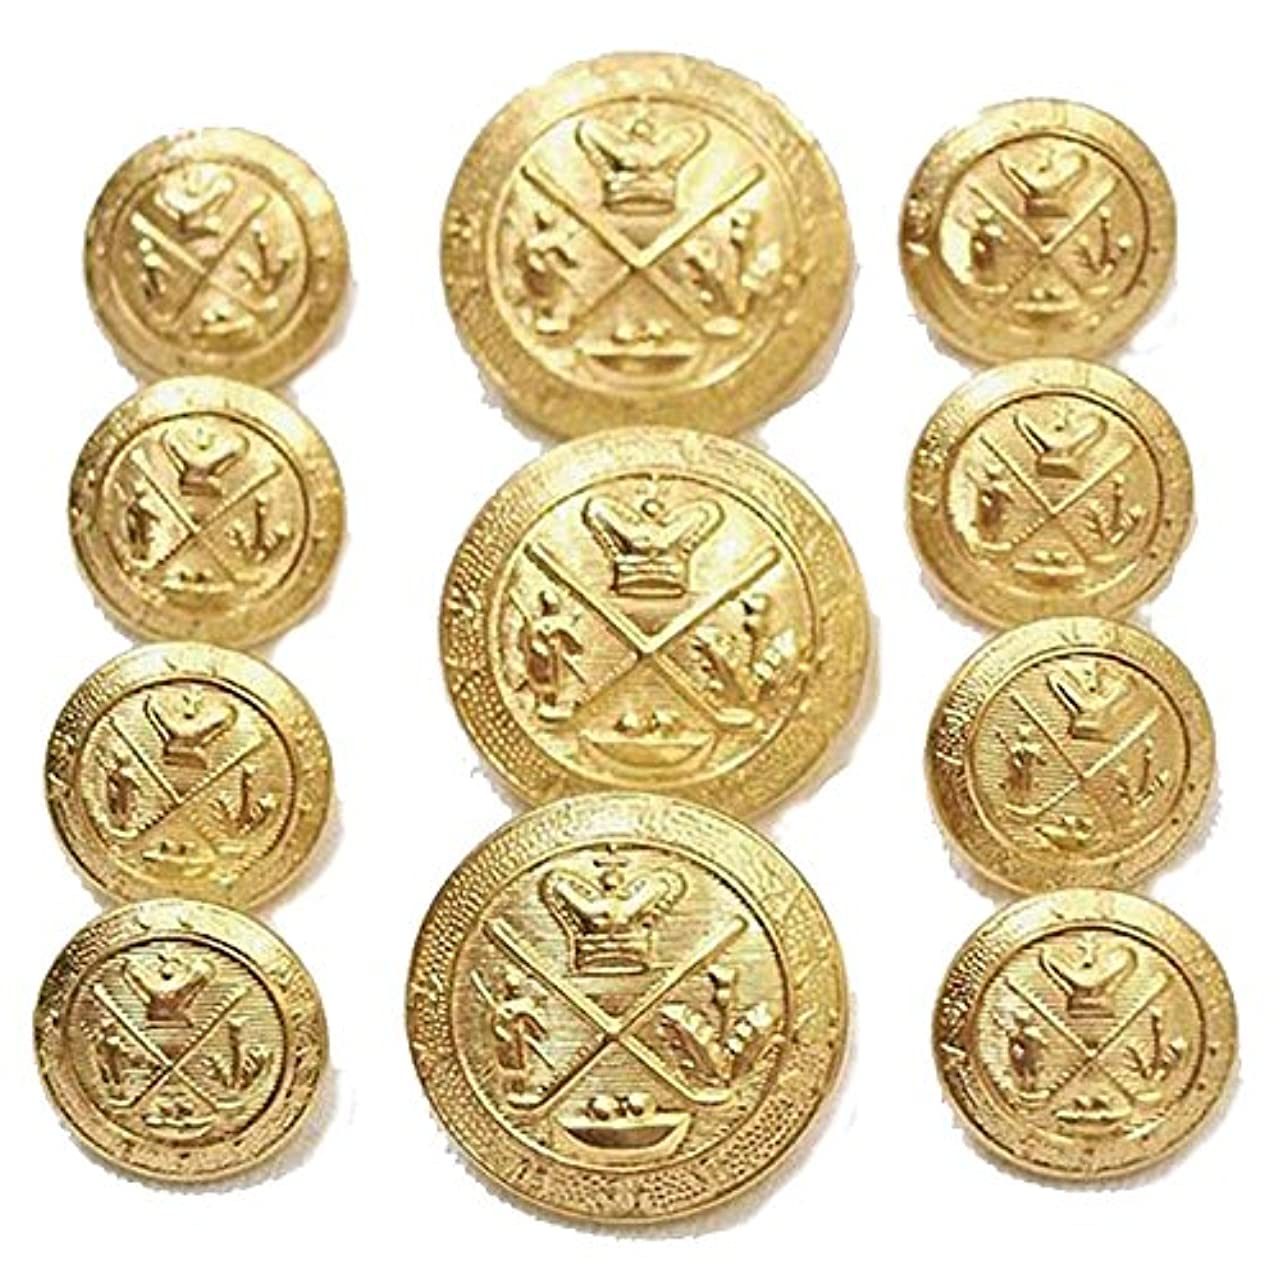 New Premium Gold Toned Metal ~GOLF KING'S ROYAL CREST- Set of 11 Buttons